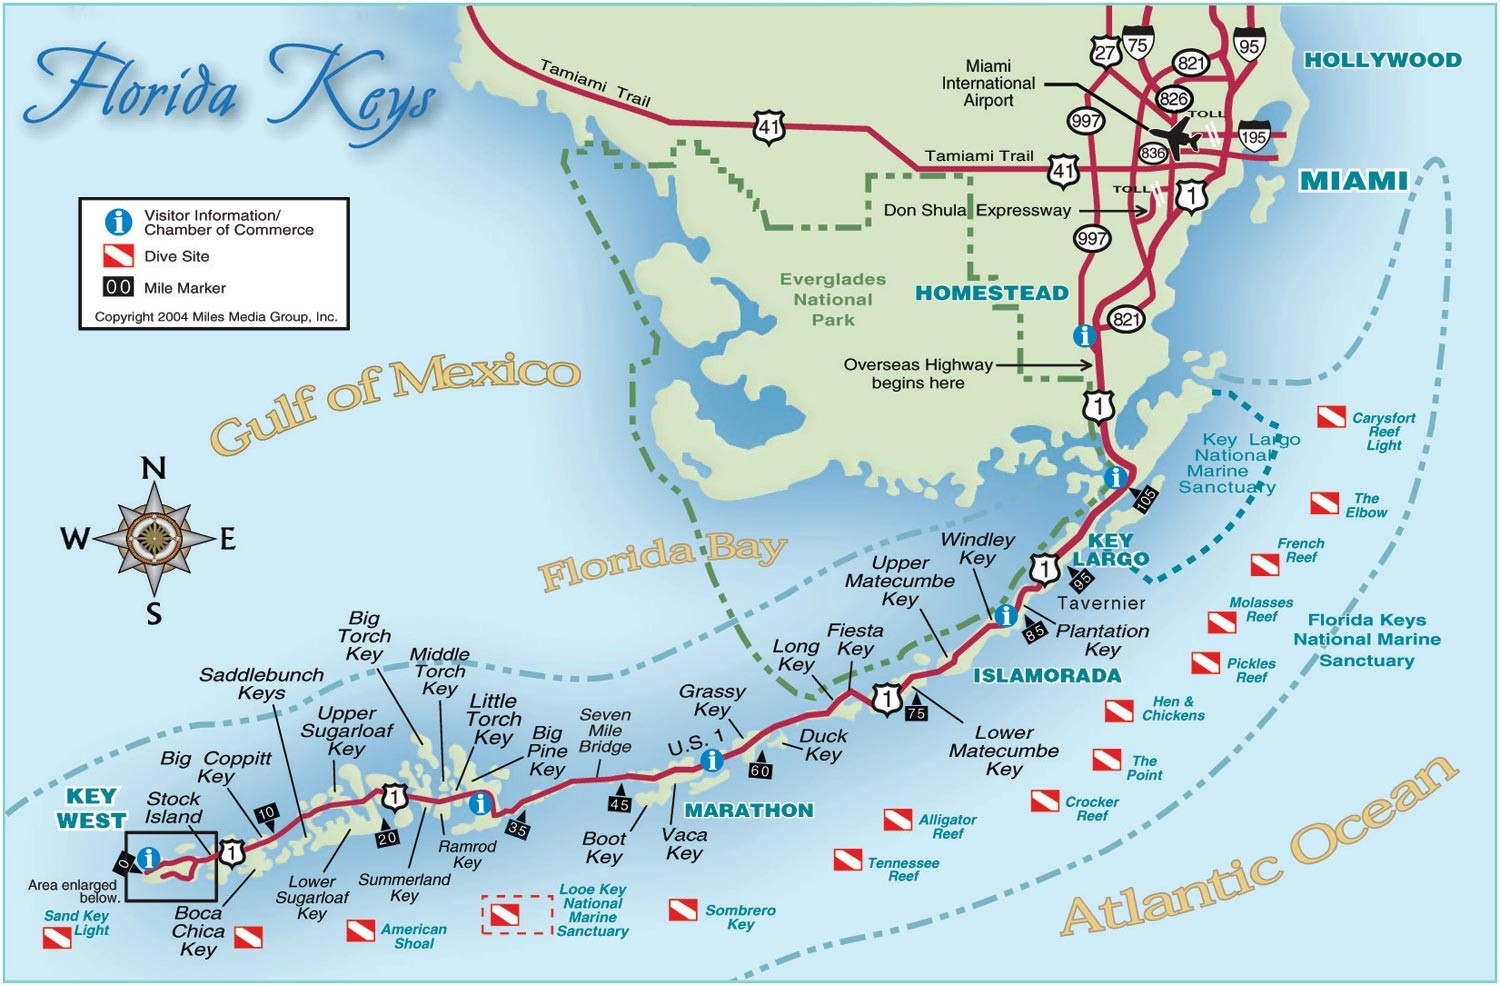 Map Of Miami Florida And Surrounding Areas | Globalsupportinitiative - Map Of Miami Florida And Surrounding Areas